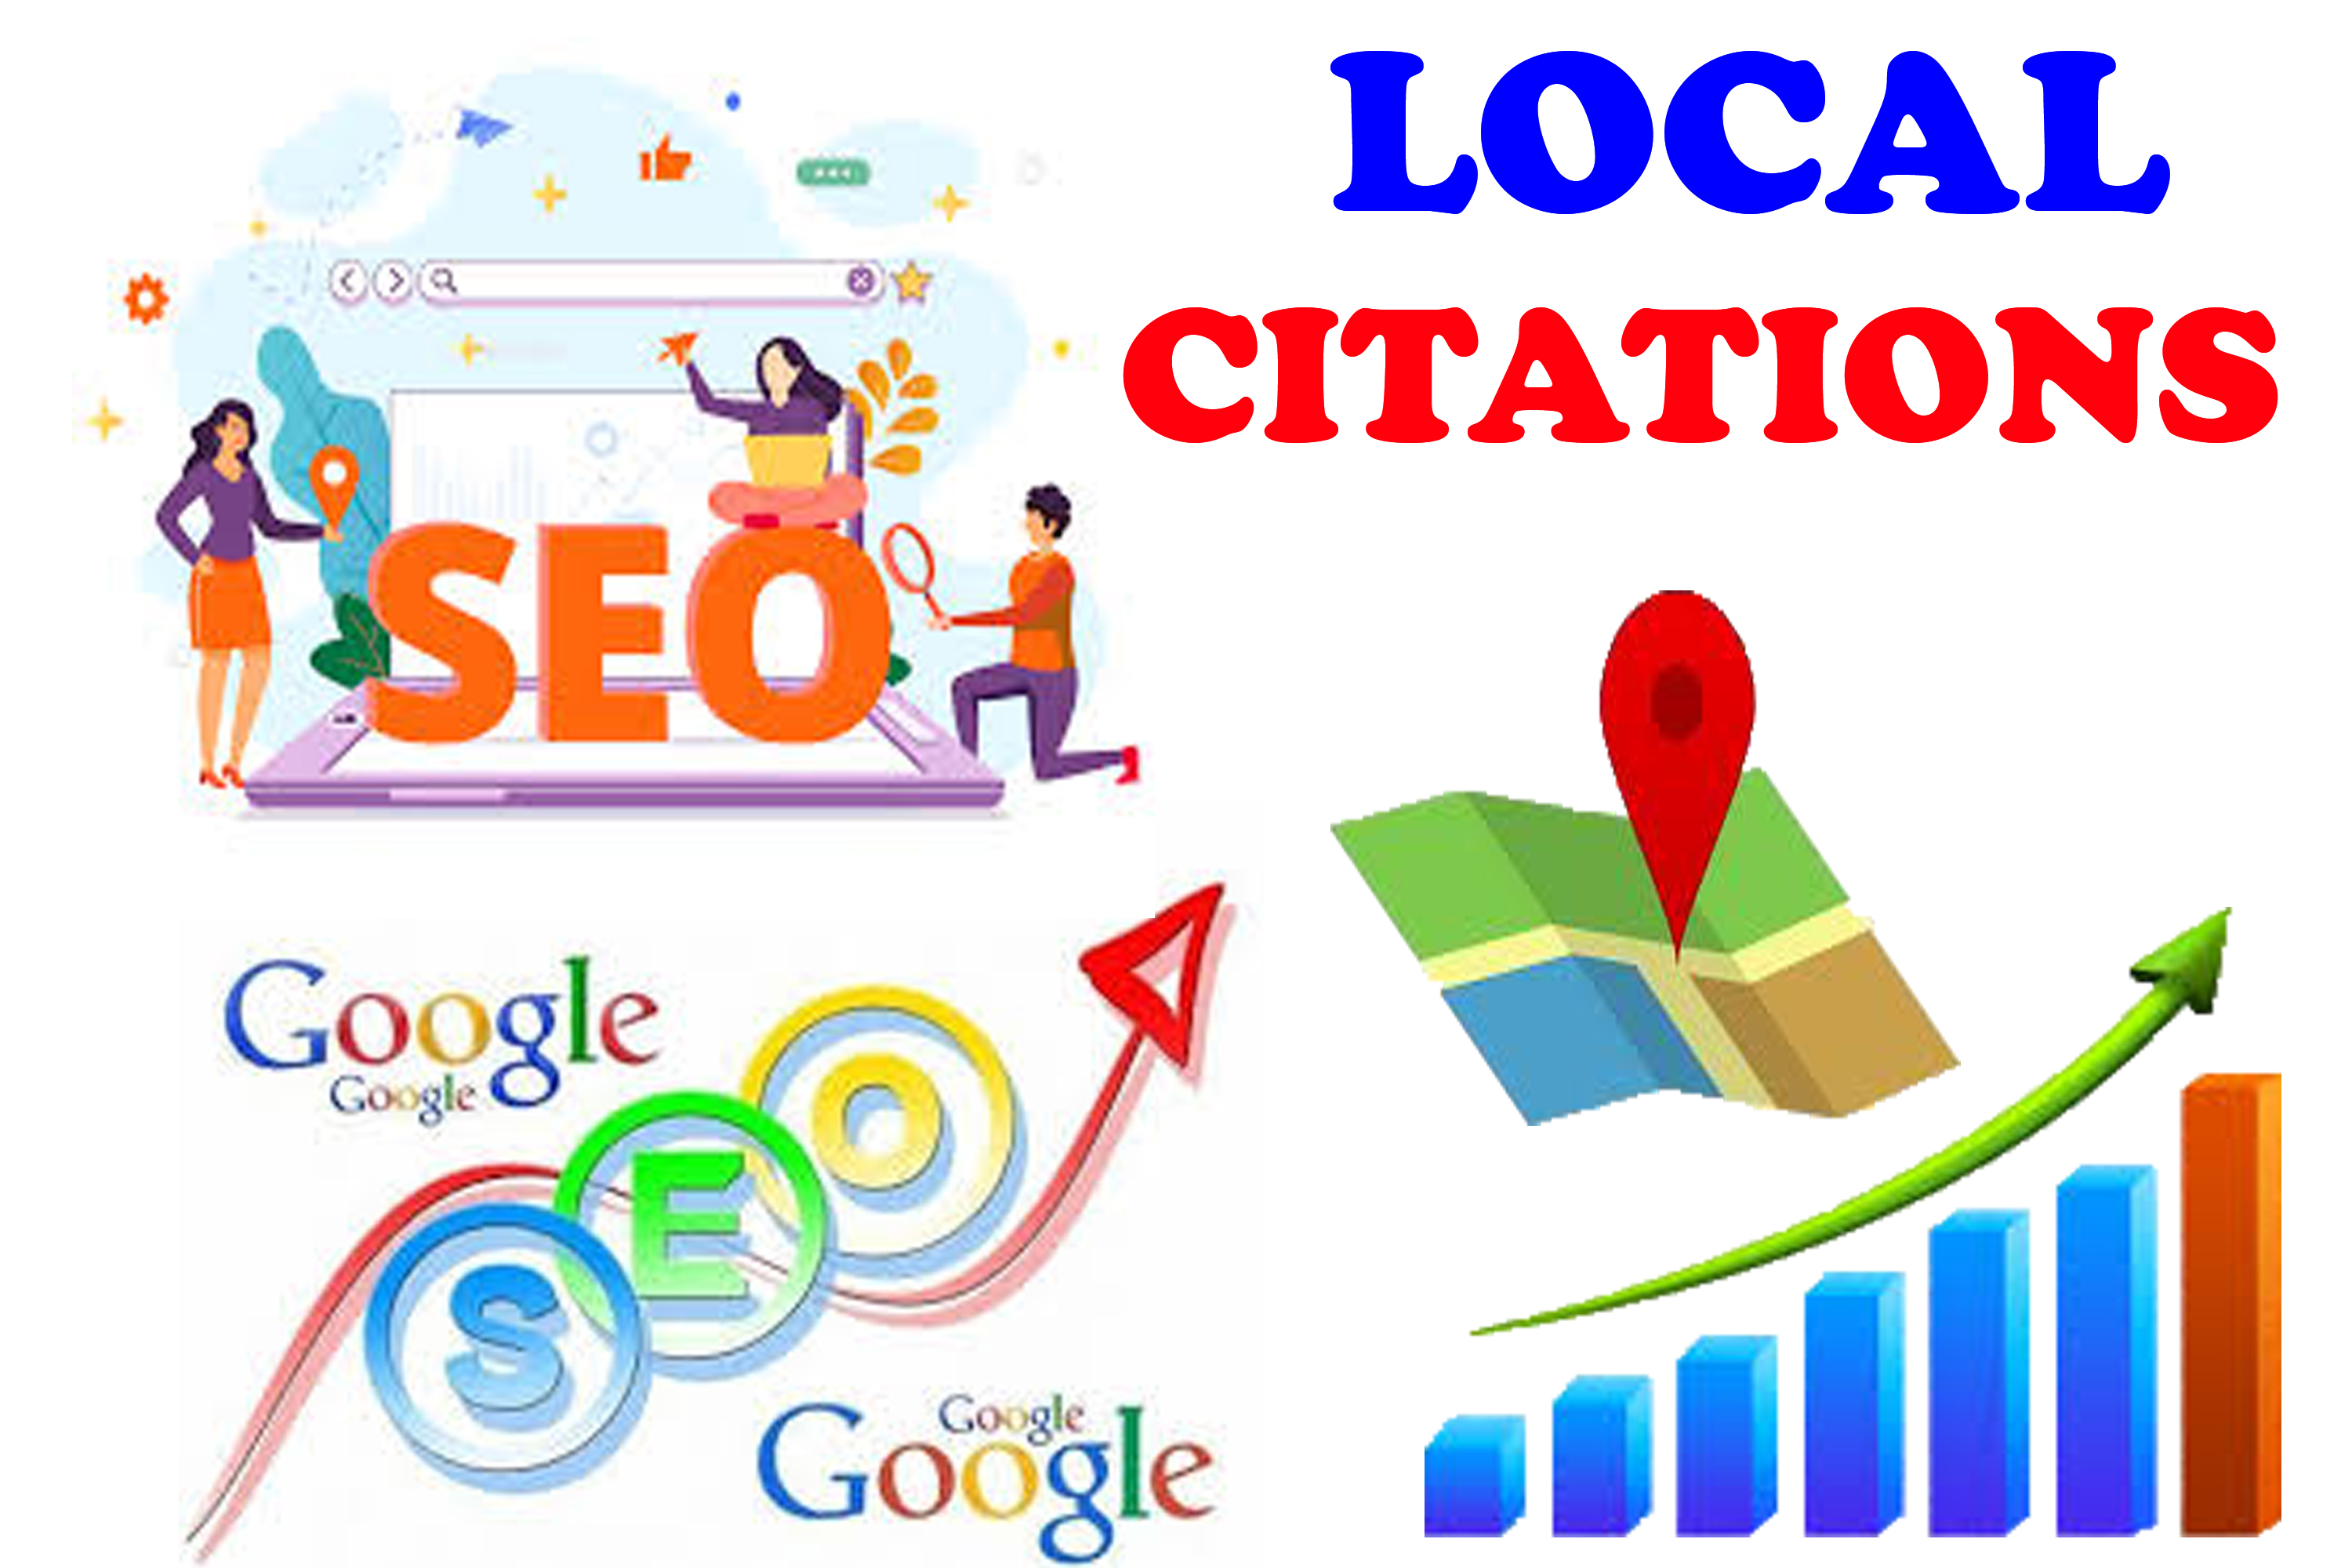 Create Live 60 top local citations or local SEO Switzerland,  Sweden,  China,  UAE for any country